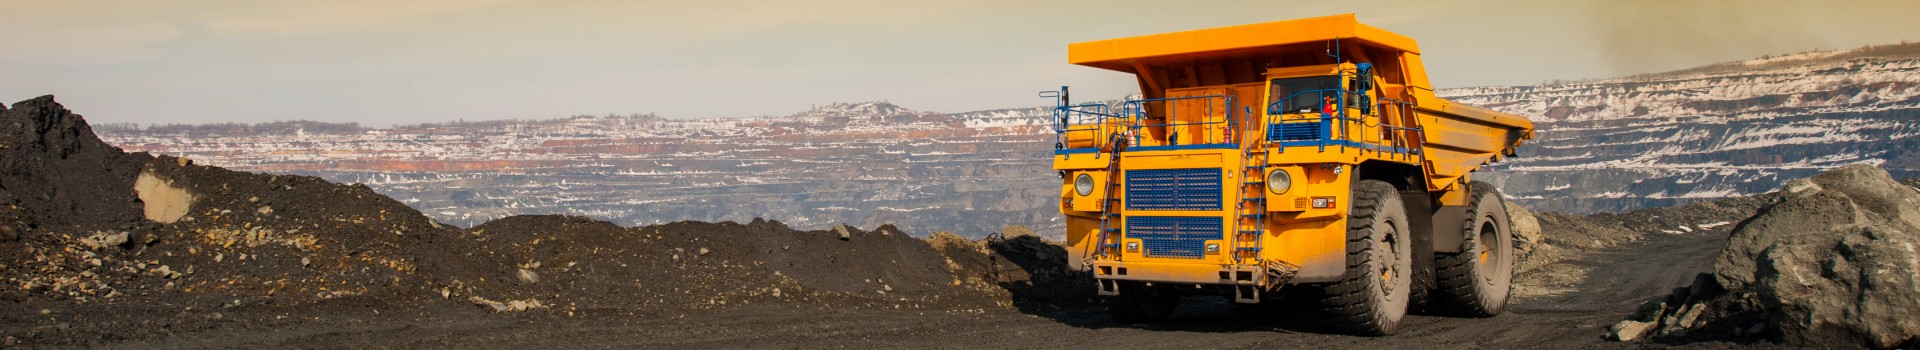 8 Critical Issues That Will Be Impacting the Mining Industry In the Year Ahead hero image